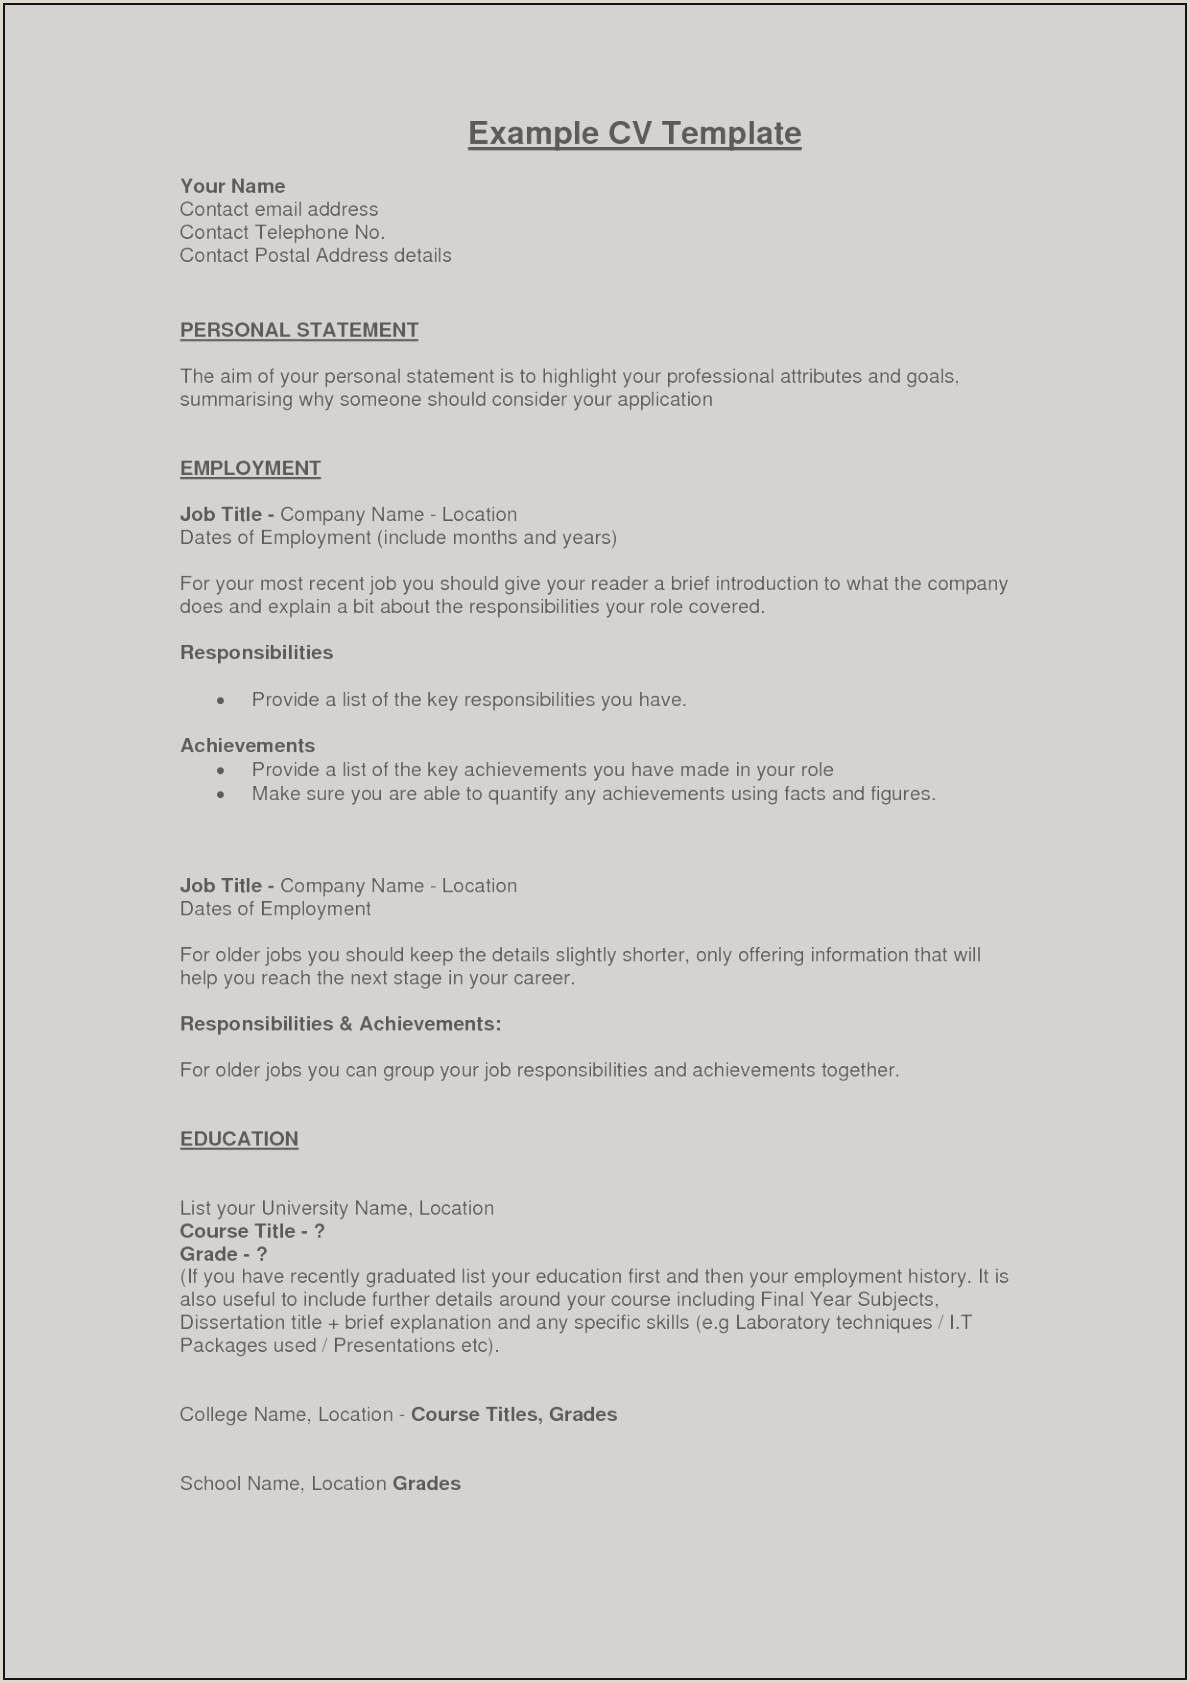 Fresher Resume Format With Photo Awesome Fresher Resume Sample